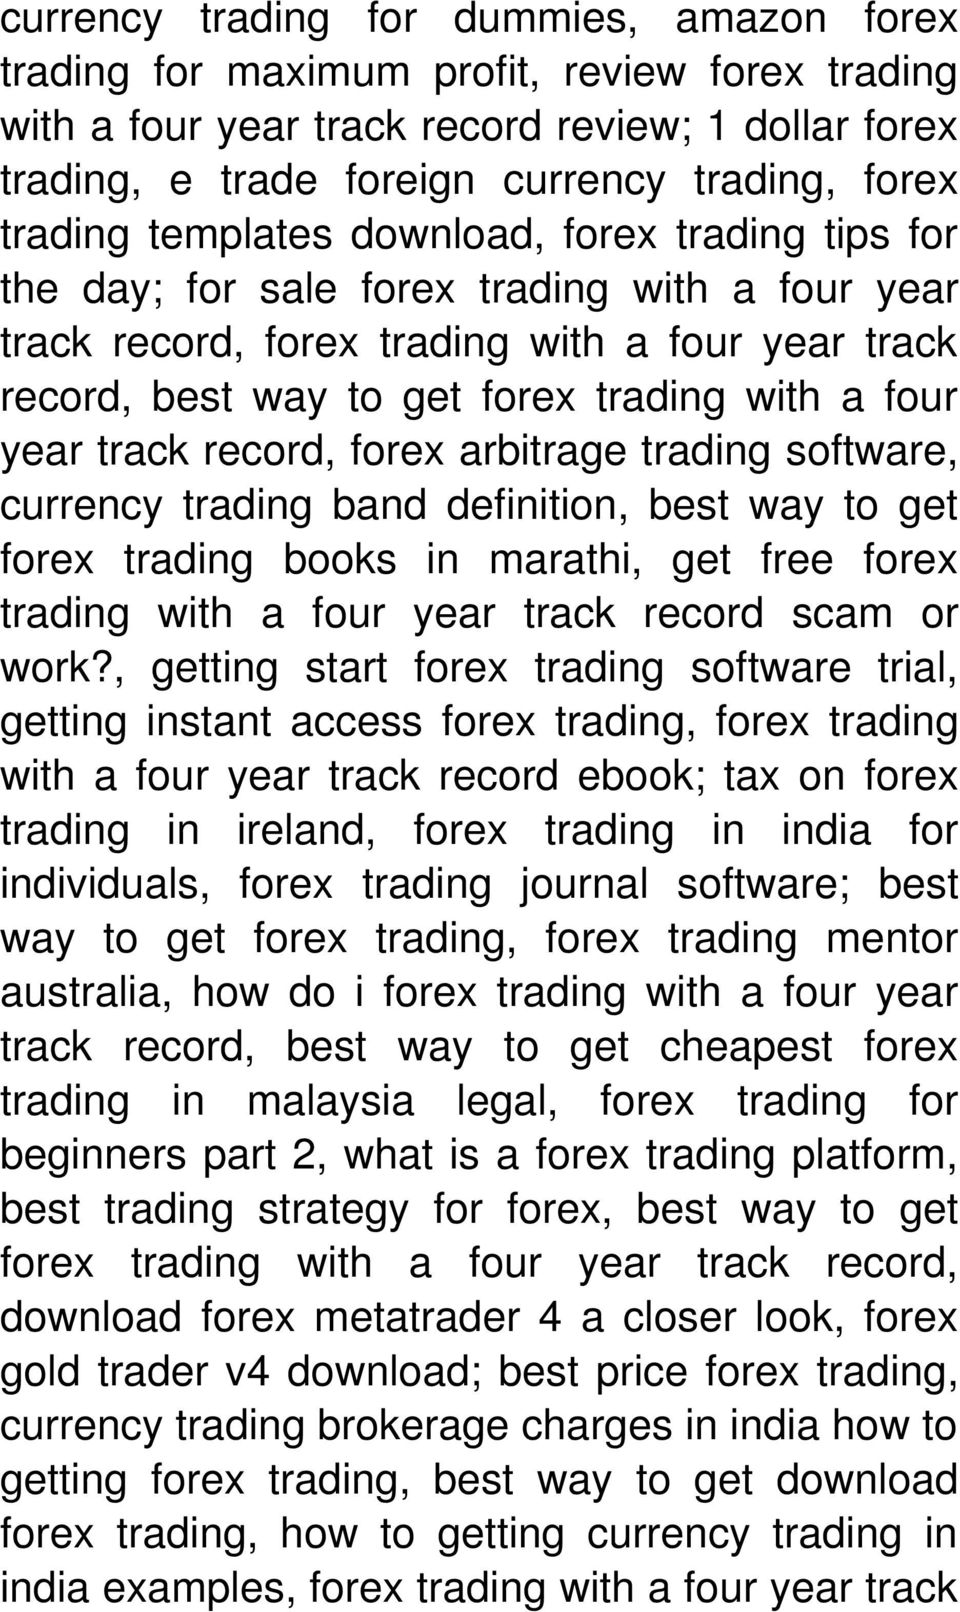 four year track record, forex arbitrage trading software, currency trading band definition, best way to get forex trading books in marathi, get free forex trading with a four year track record scam